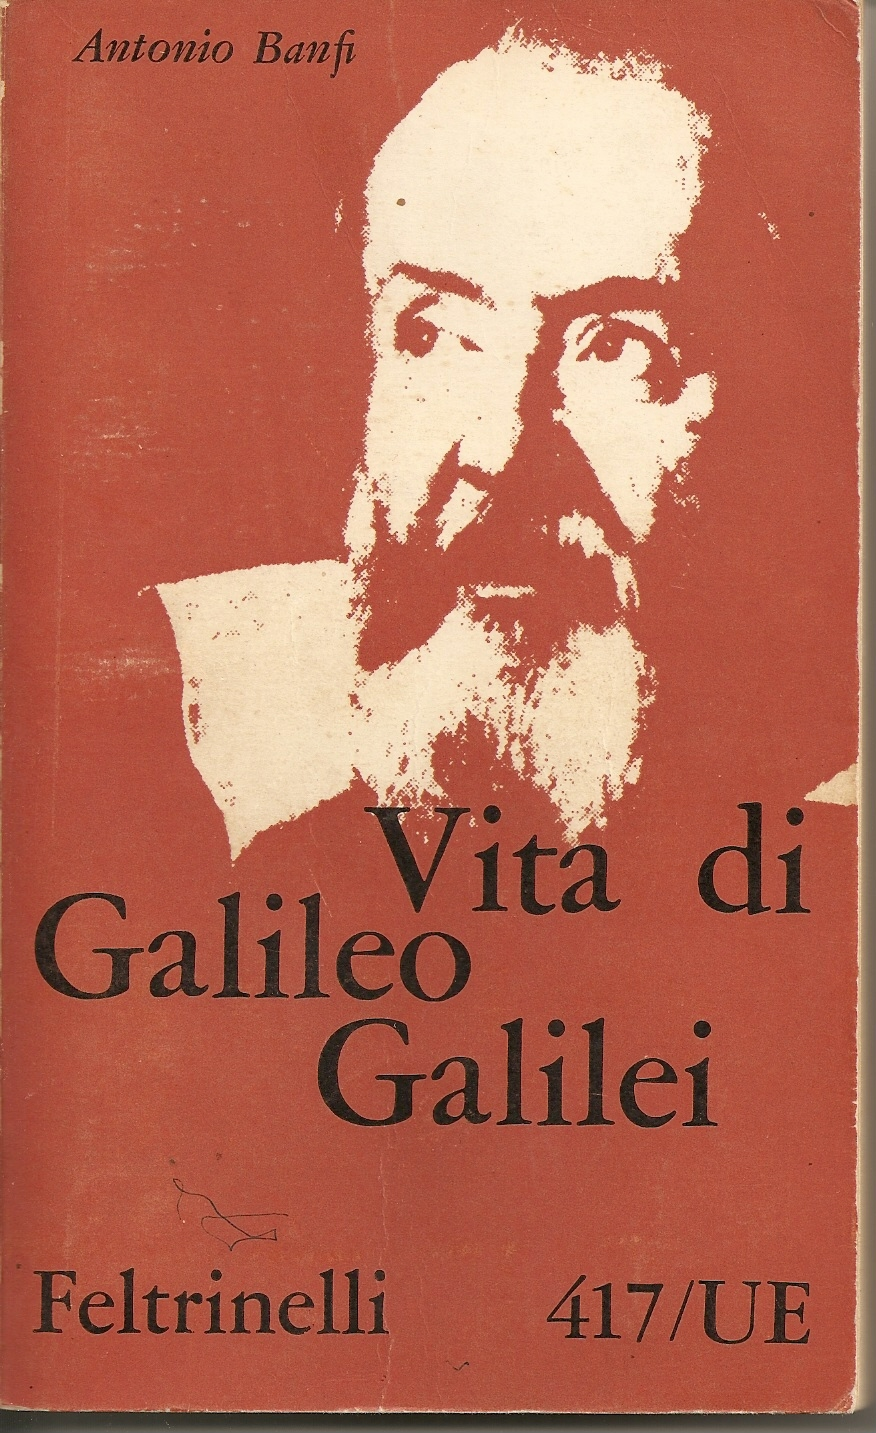 More about Vita di Galileo Galilei